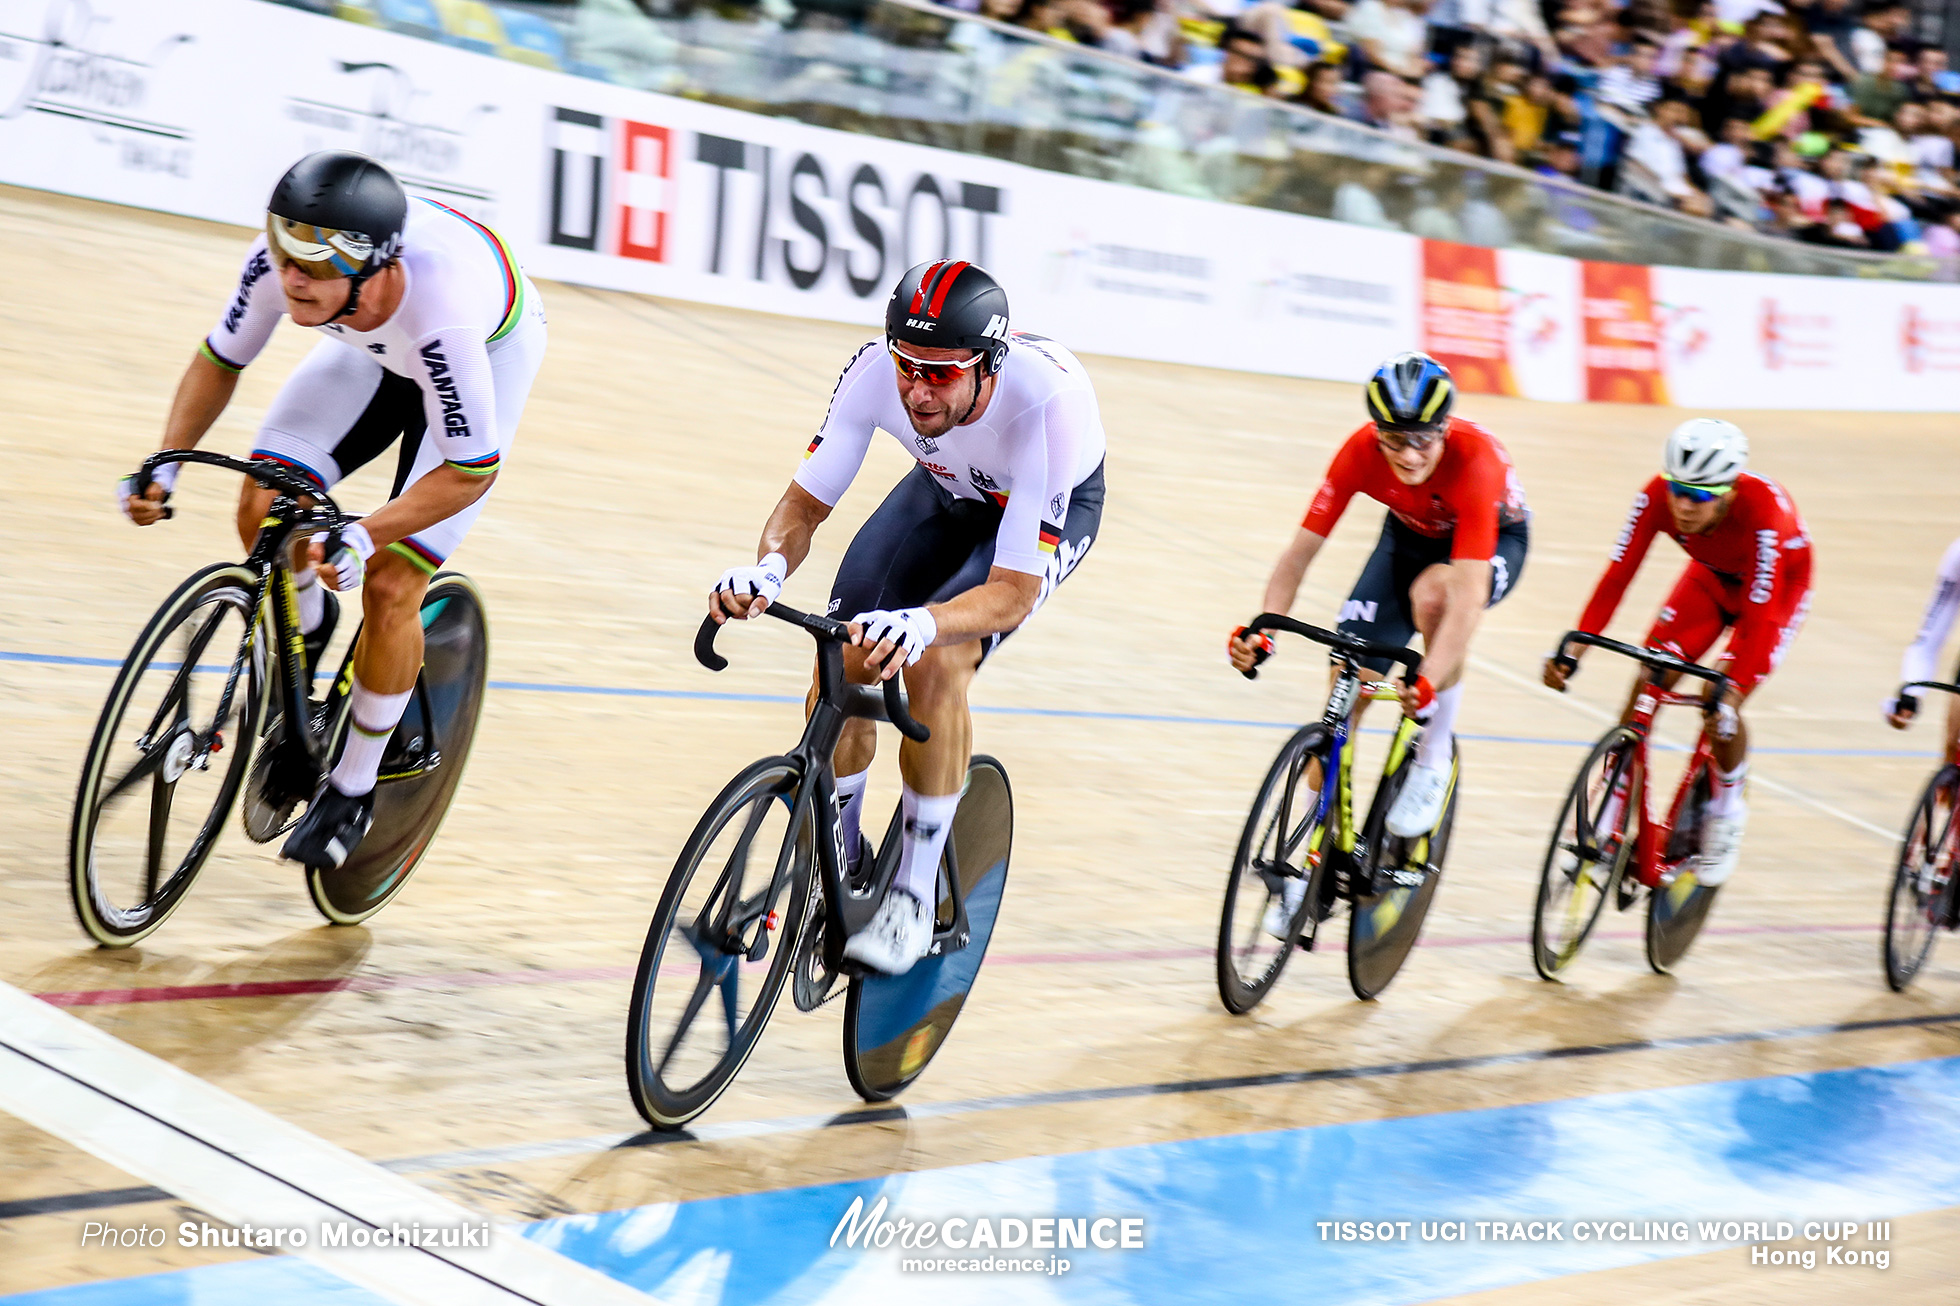 Point Race / Men's Omnium / TISSOT UCI TRACK CYCLING WORLD CUP III, Hong Kong